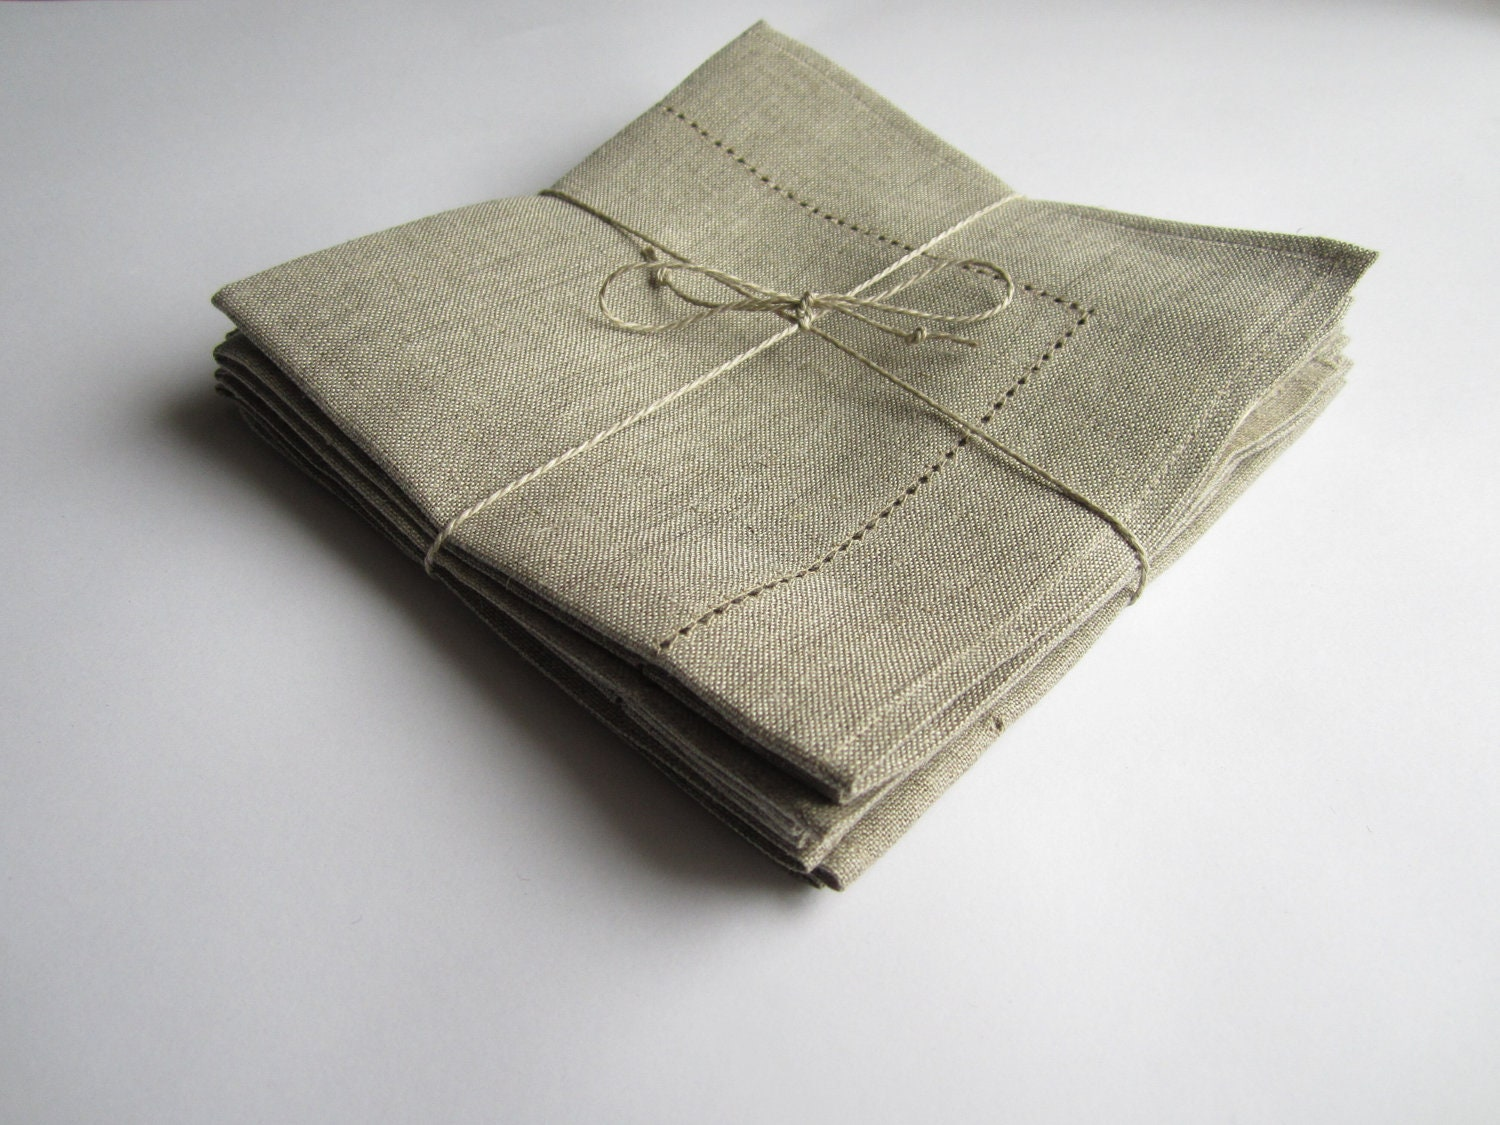 Menswear-inspired cloth napkins in four textural patterns and stripes bring a range of mixed neutrals to the table in crisp, hemmed linen. Details Suits Linen Cloth Dinner Napkins, Set .